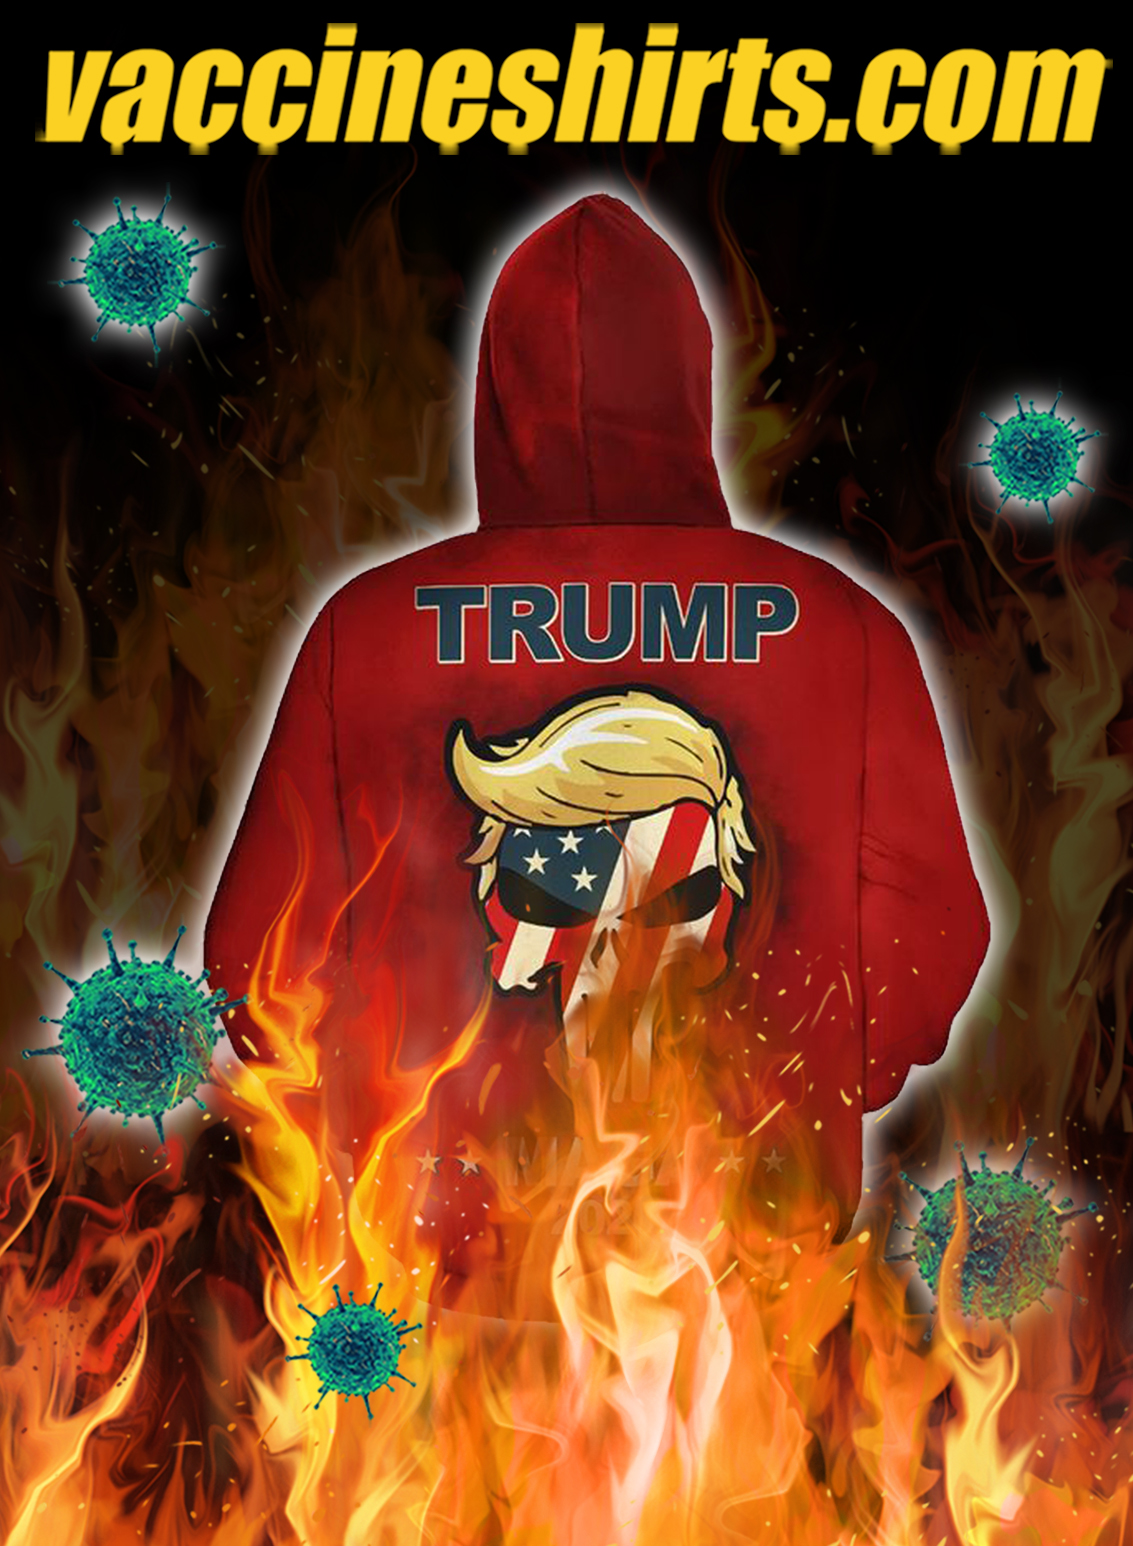 Trump mage we the people all aboard the trump train 3d all over hoodie- back